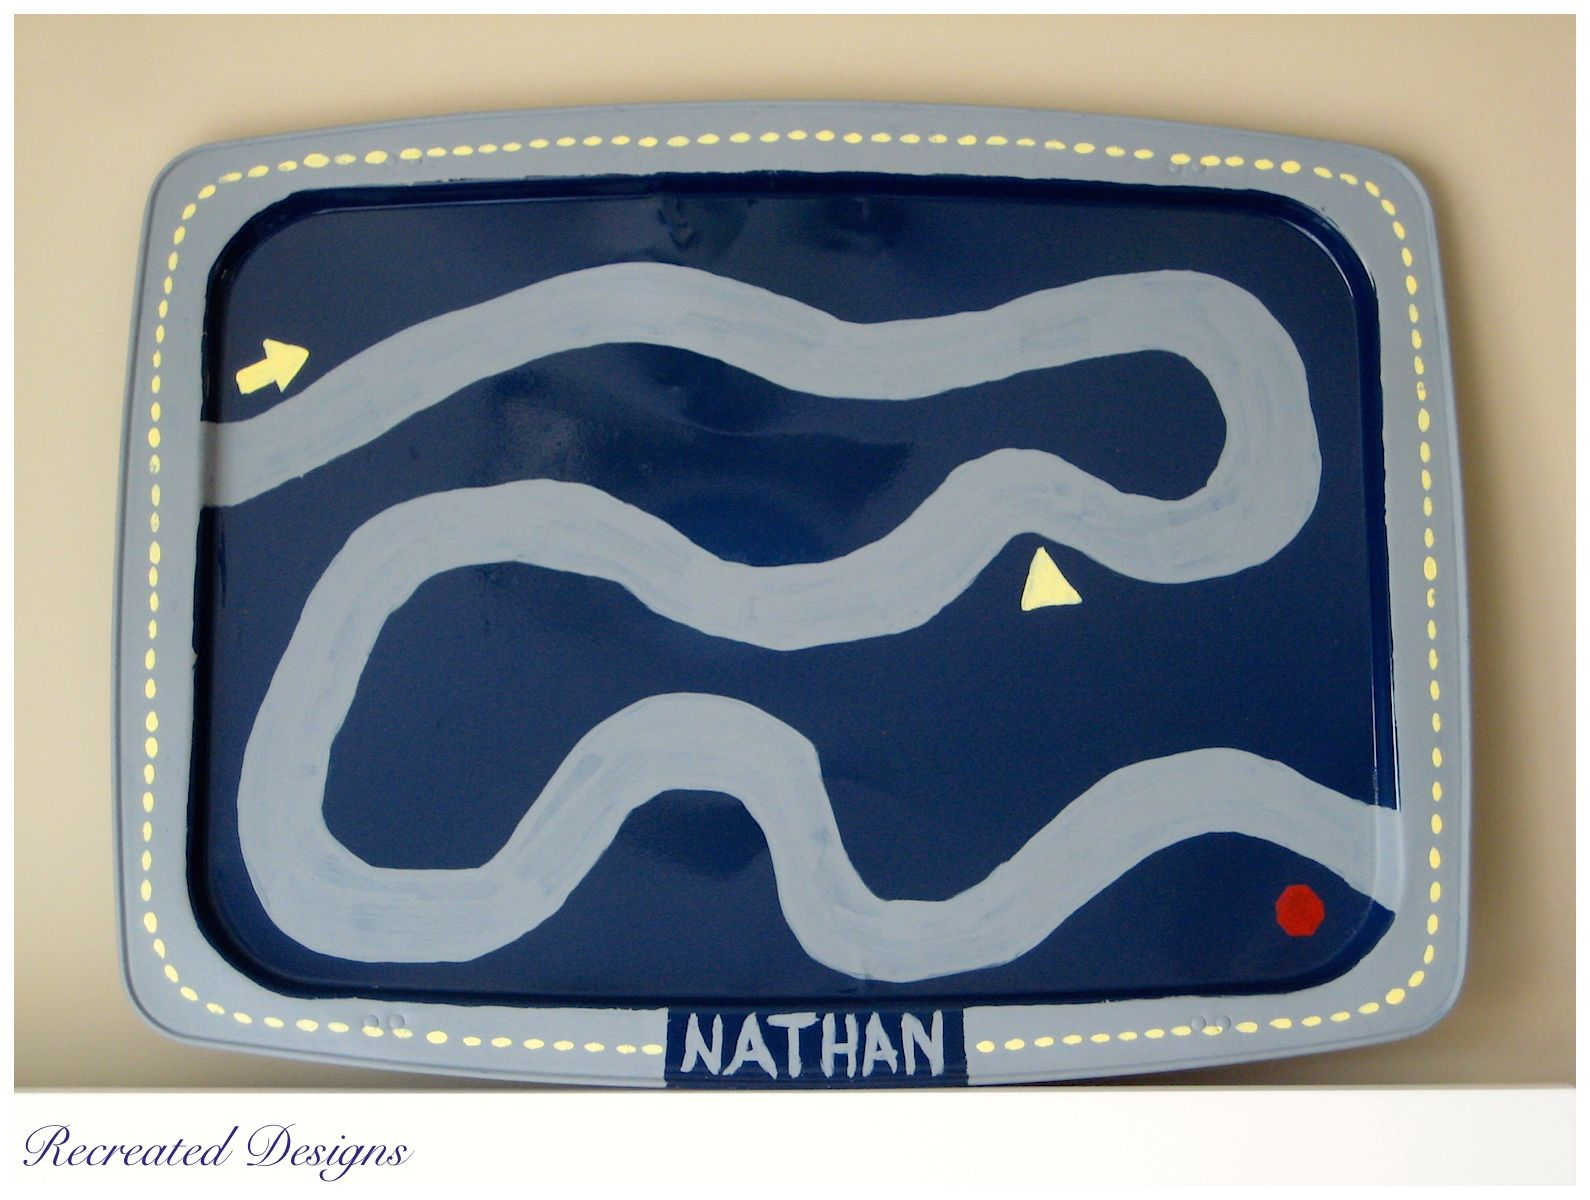 A vintage TV tray turned into a piece of art for the wall and a play mat for toy cars.   http://recreated-designs.blogspot.ca/2014/08/childhood-memories-of-tv-trays.html